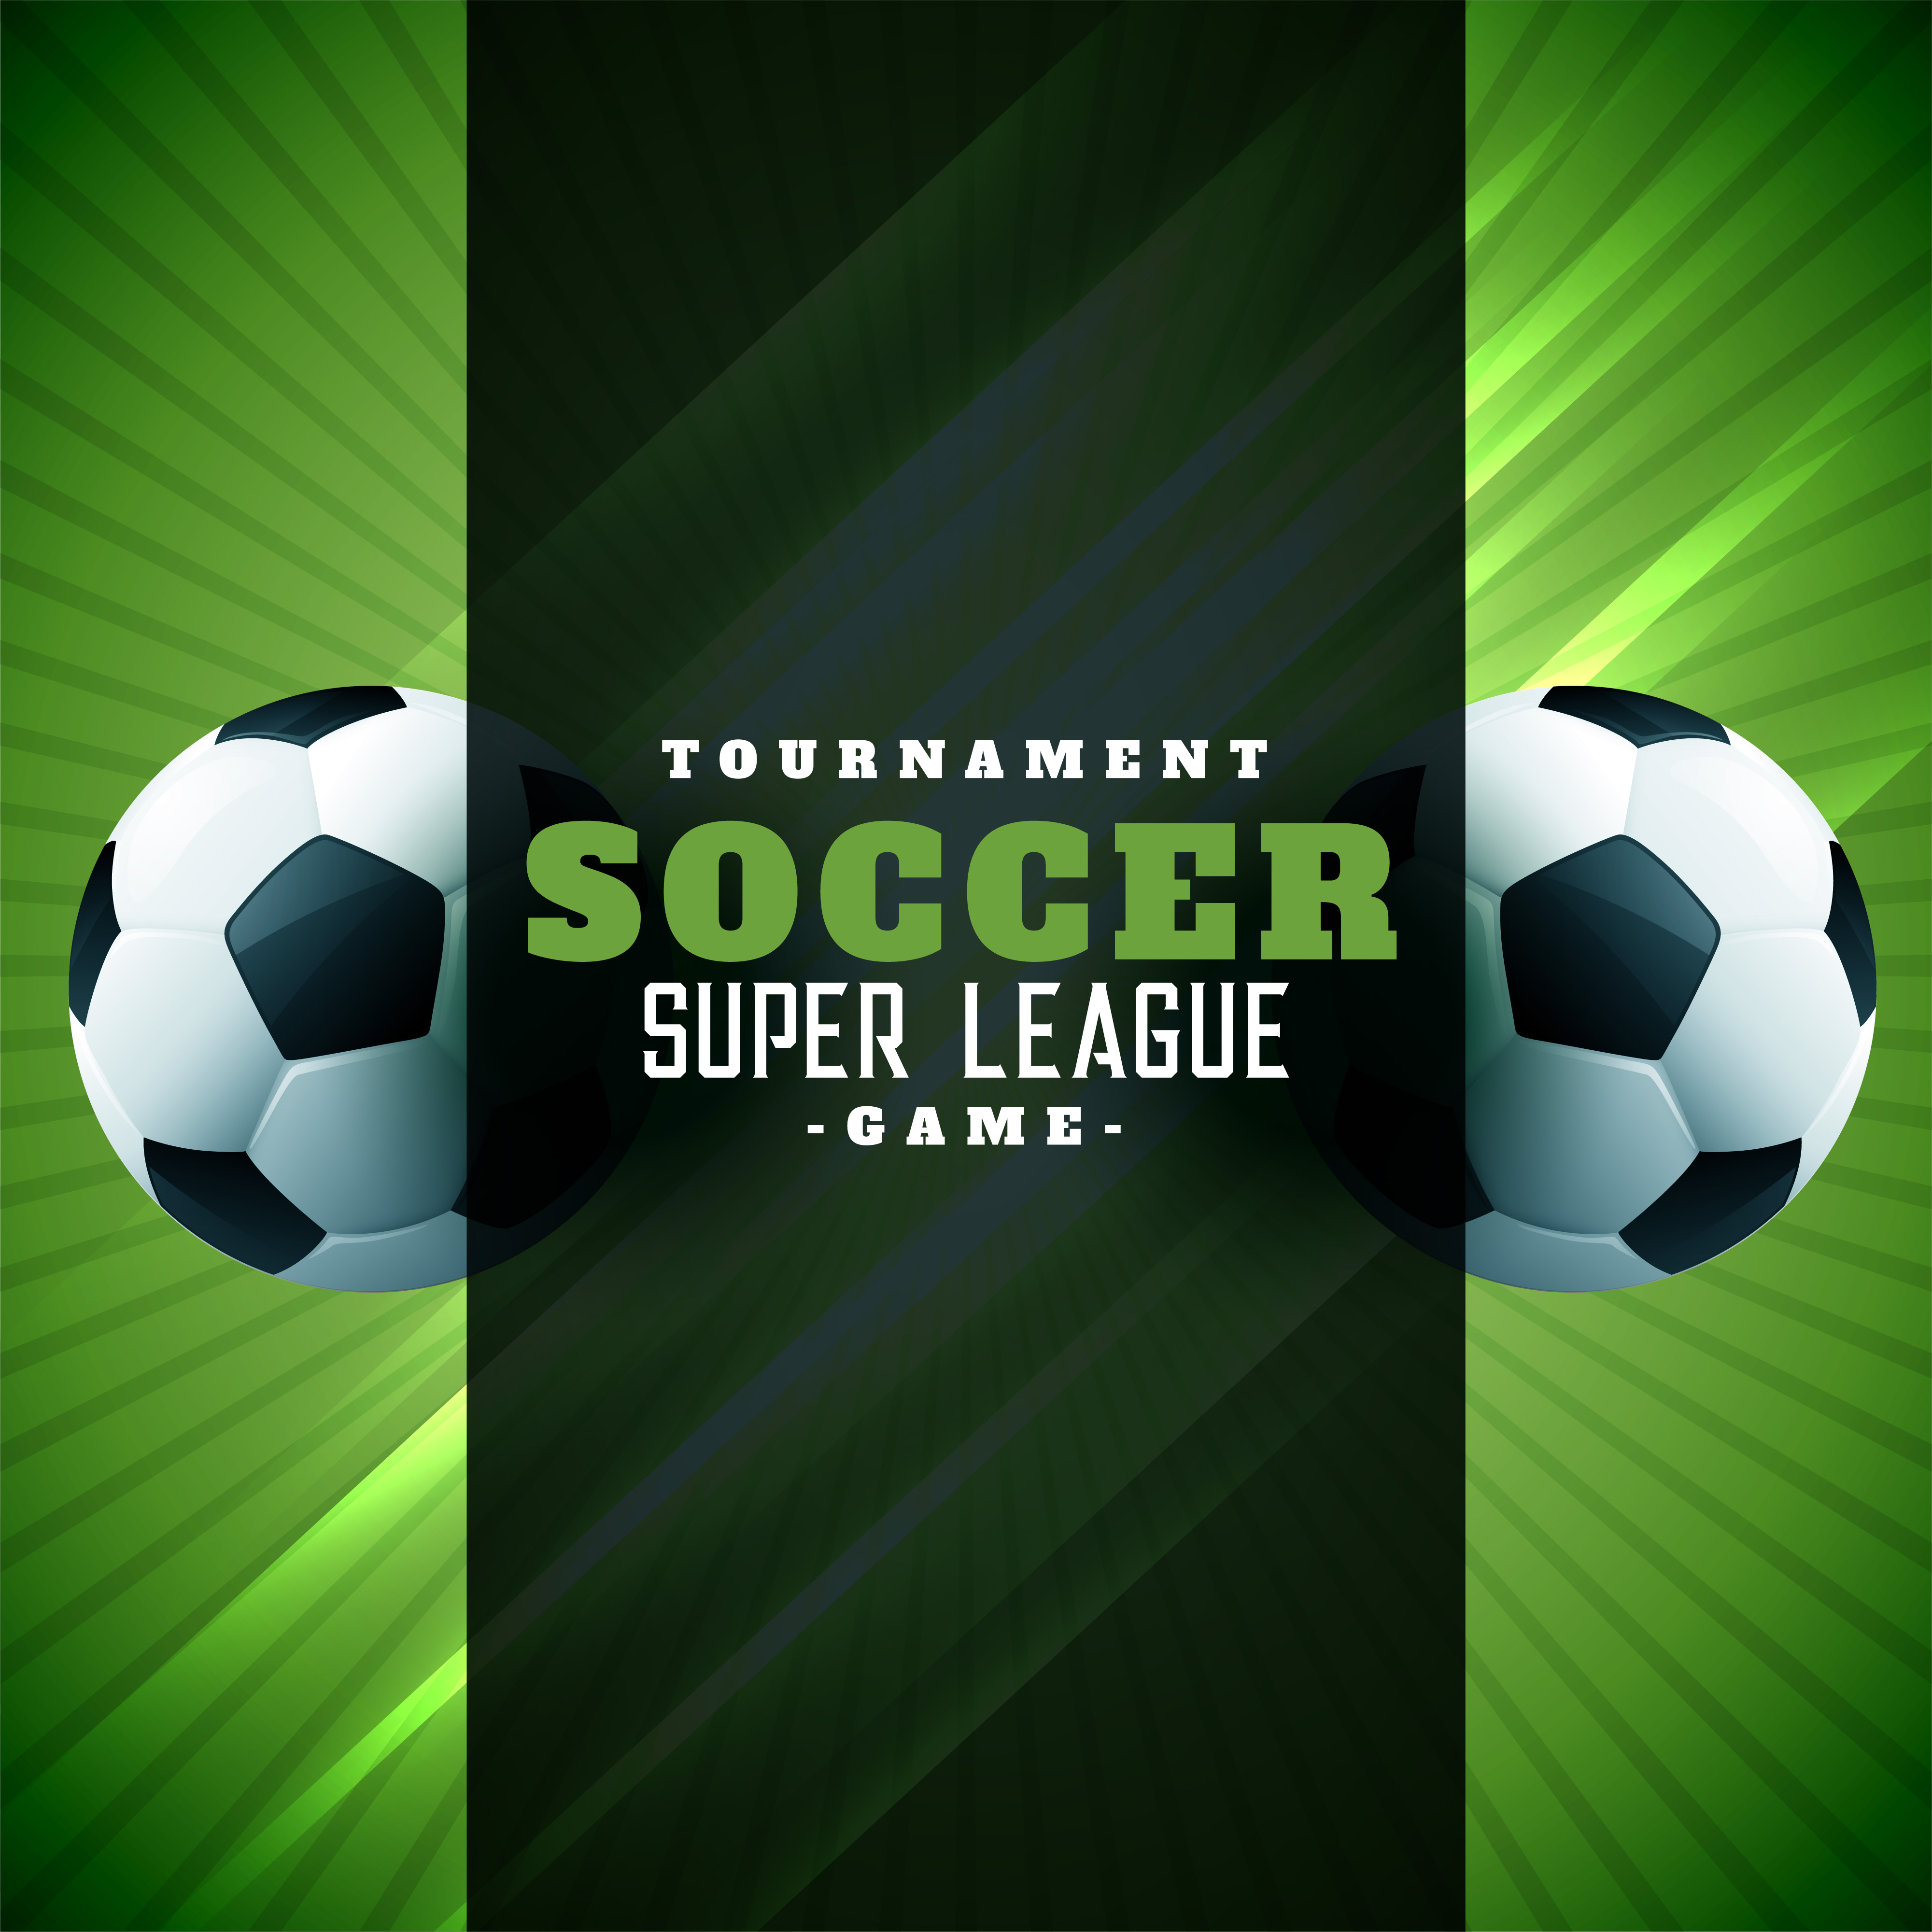 football poster design green background